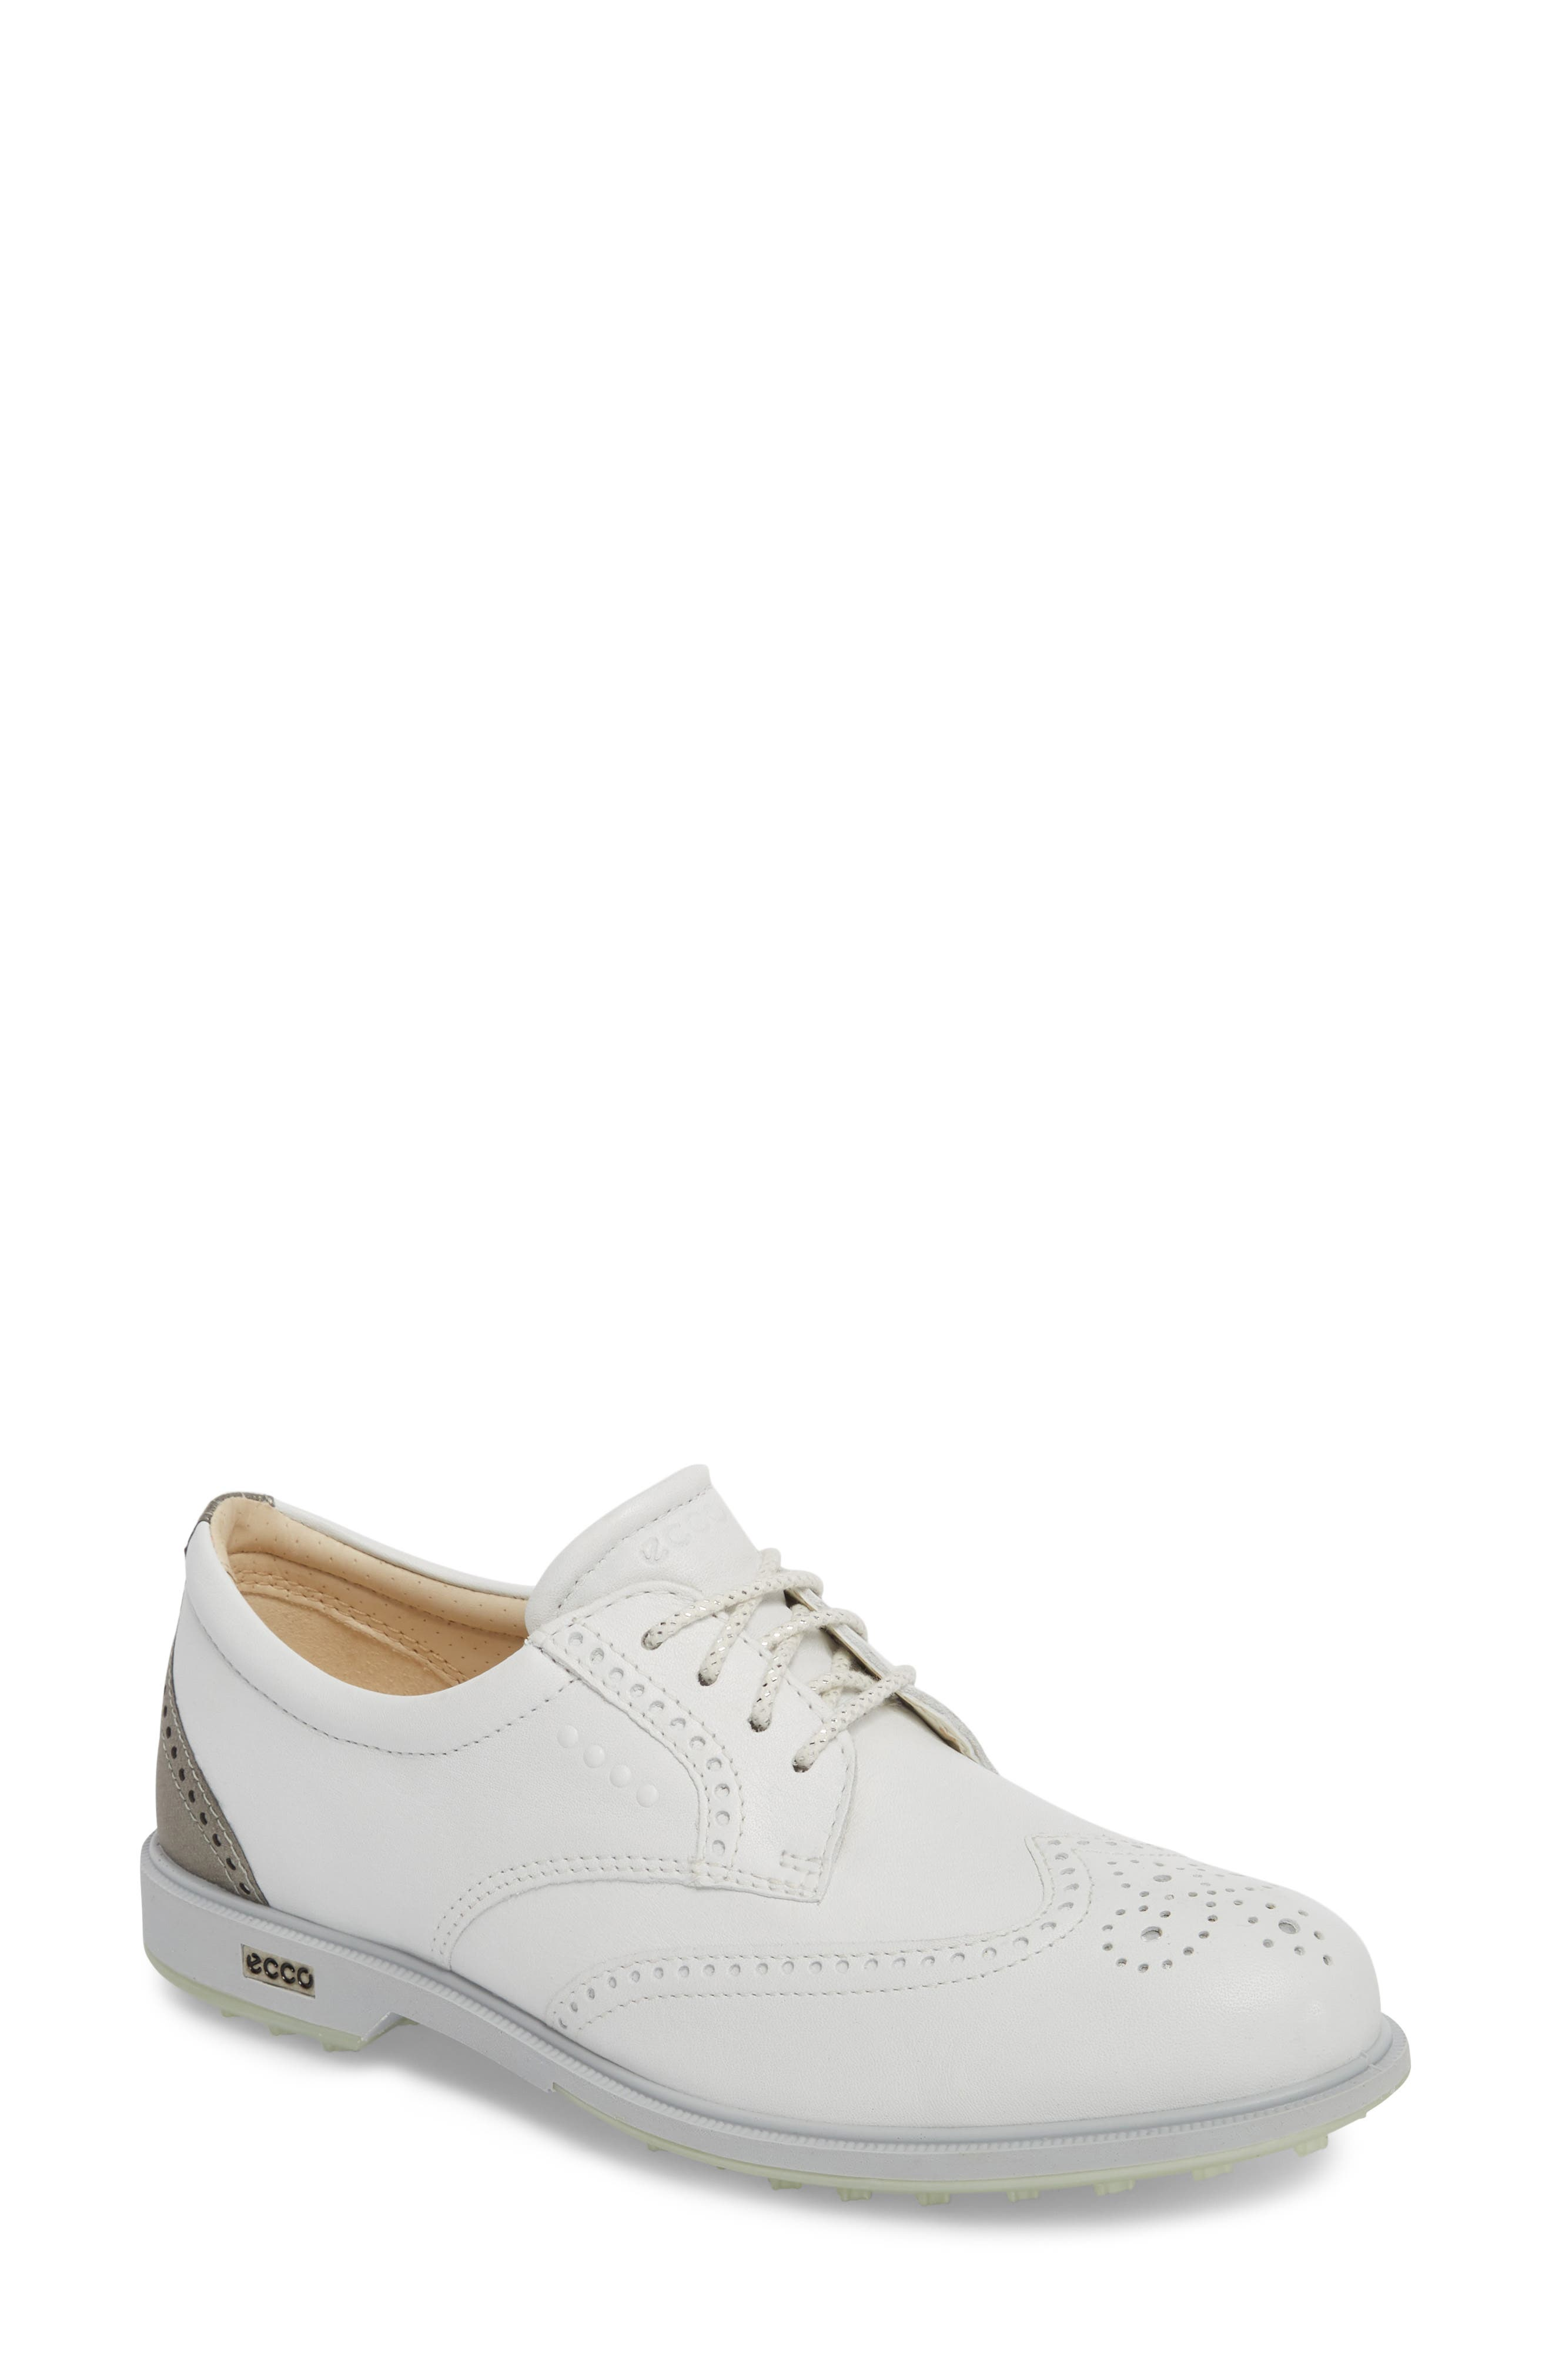 'Tour' Hybrid Wingtip Golf Shoe,                         Main,                         color, WHITE LEATHER/ GREY